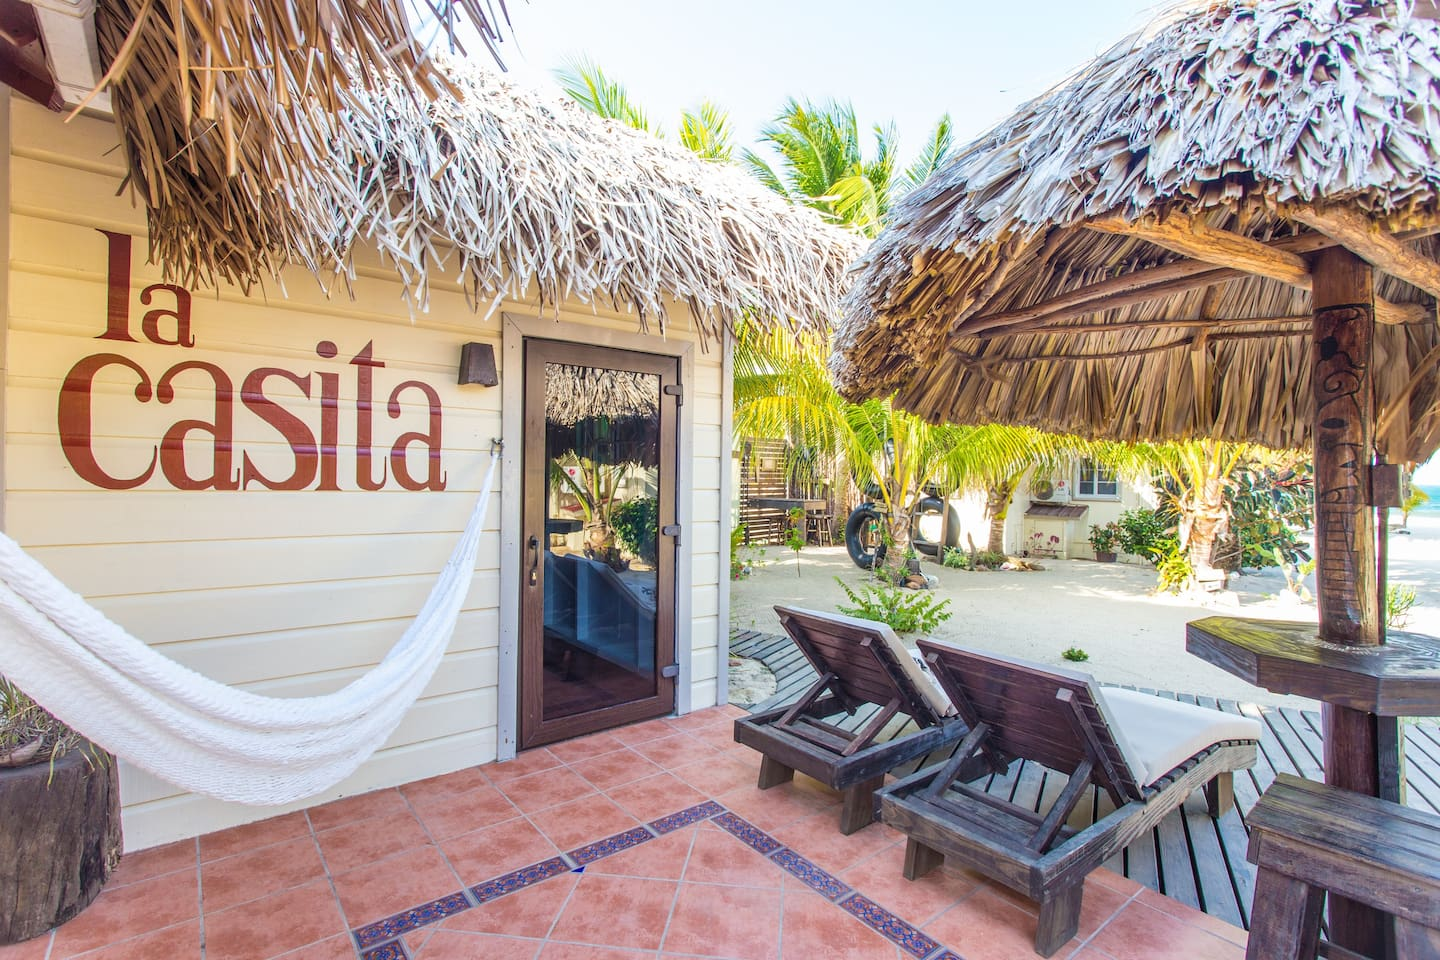 Gorgeous veranda - private palapa bar for drinks or coffee - or the hammock overlooking the sea